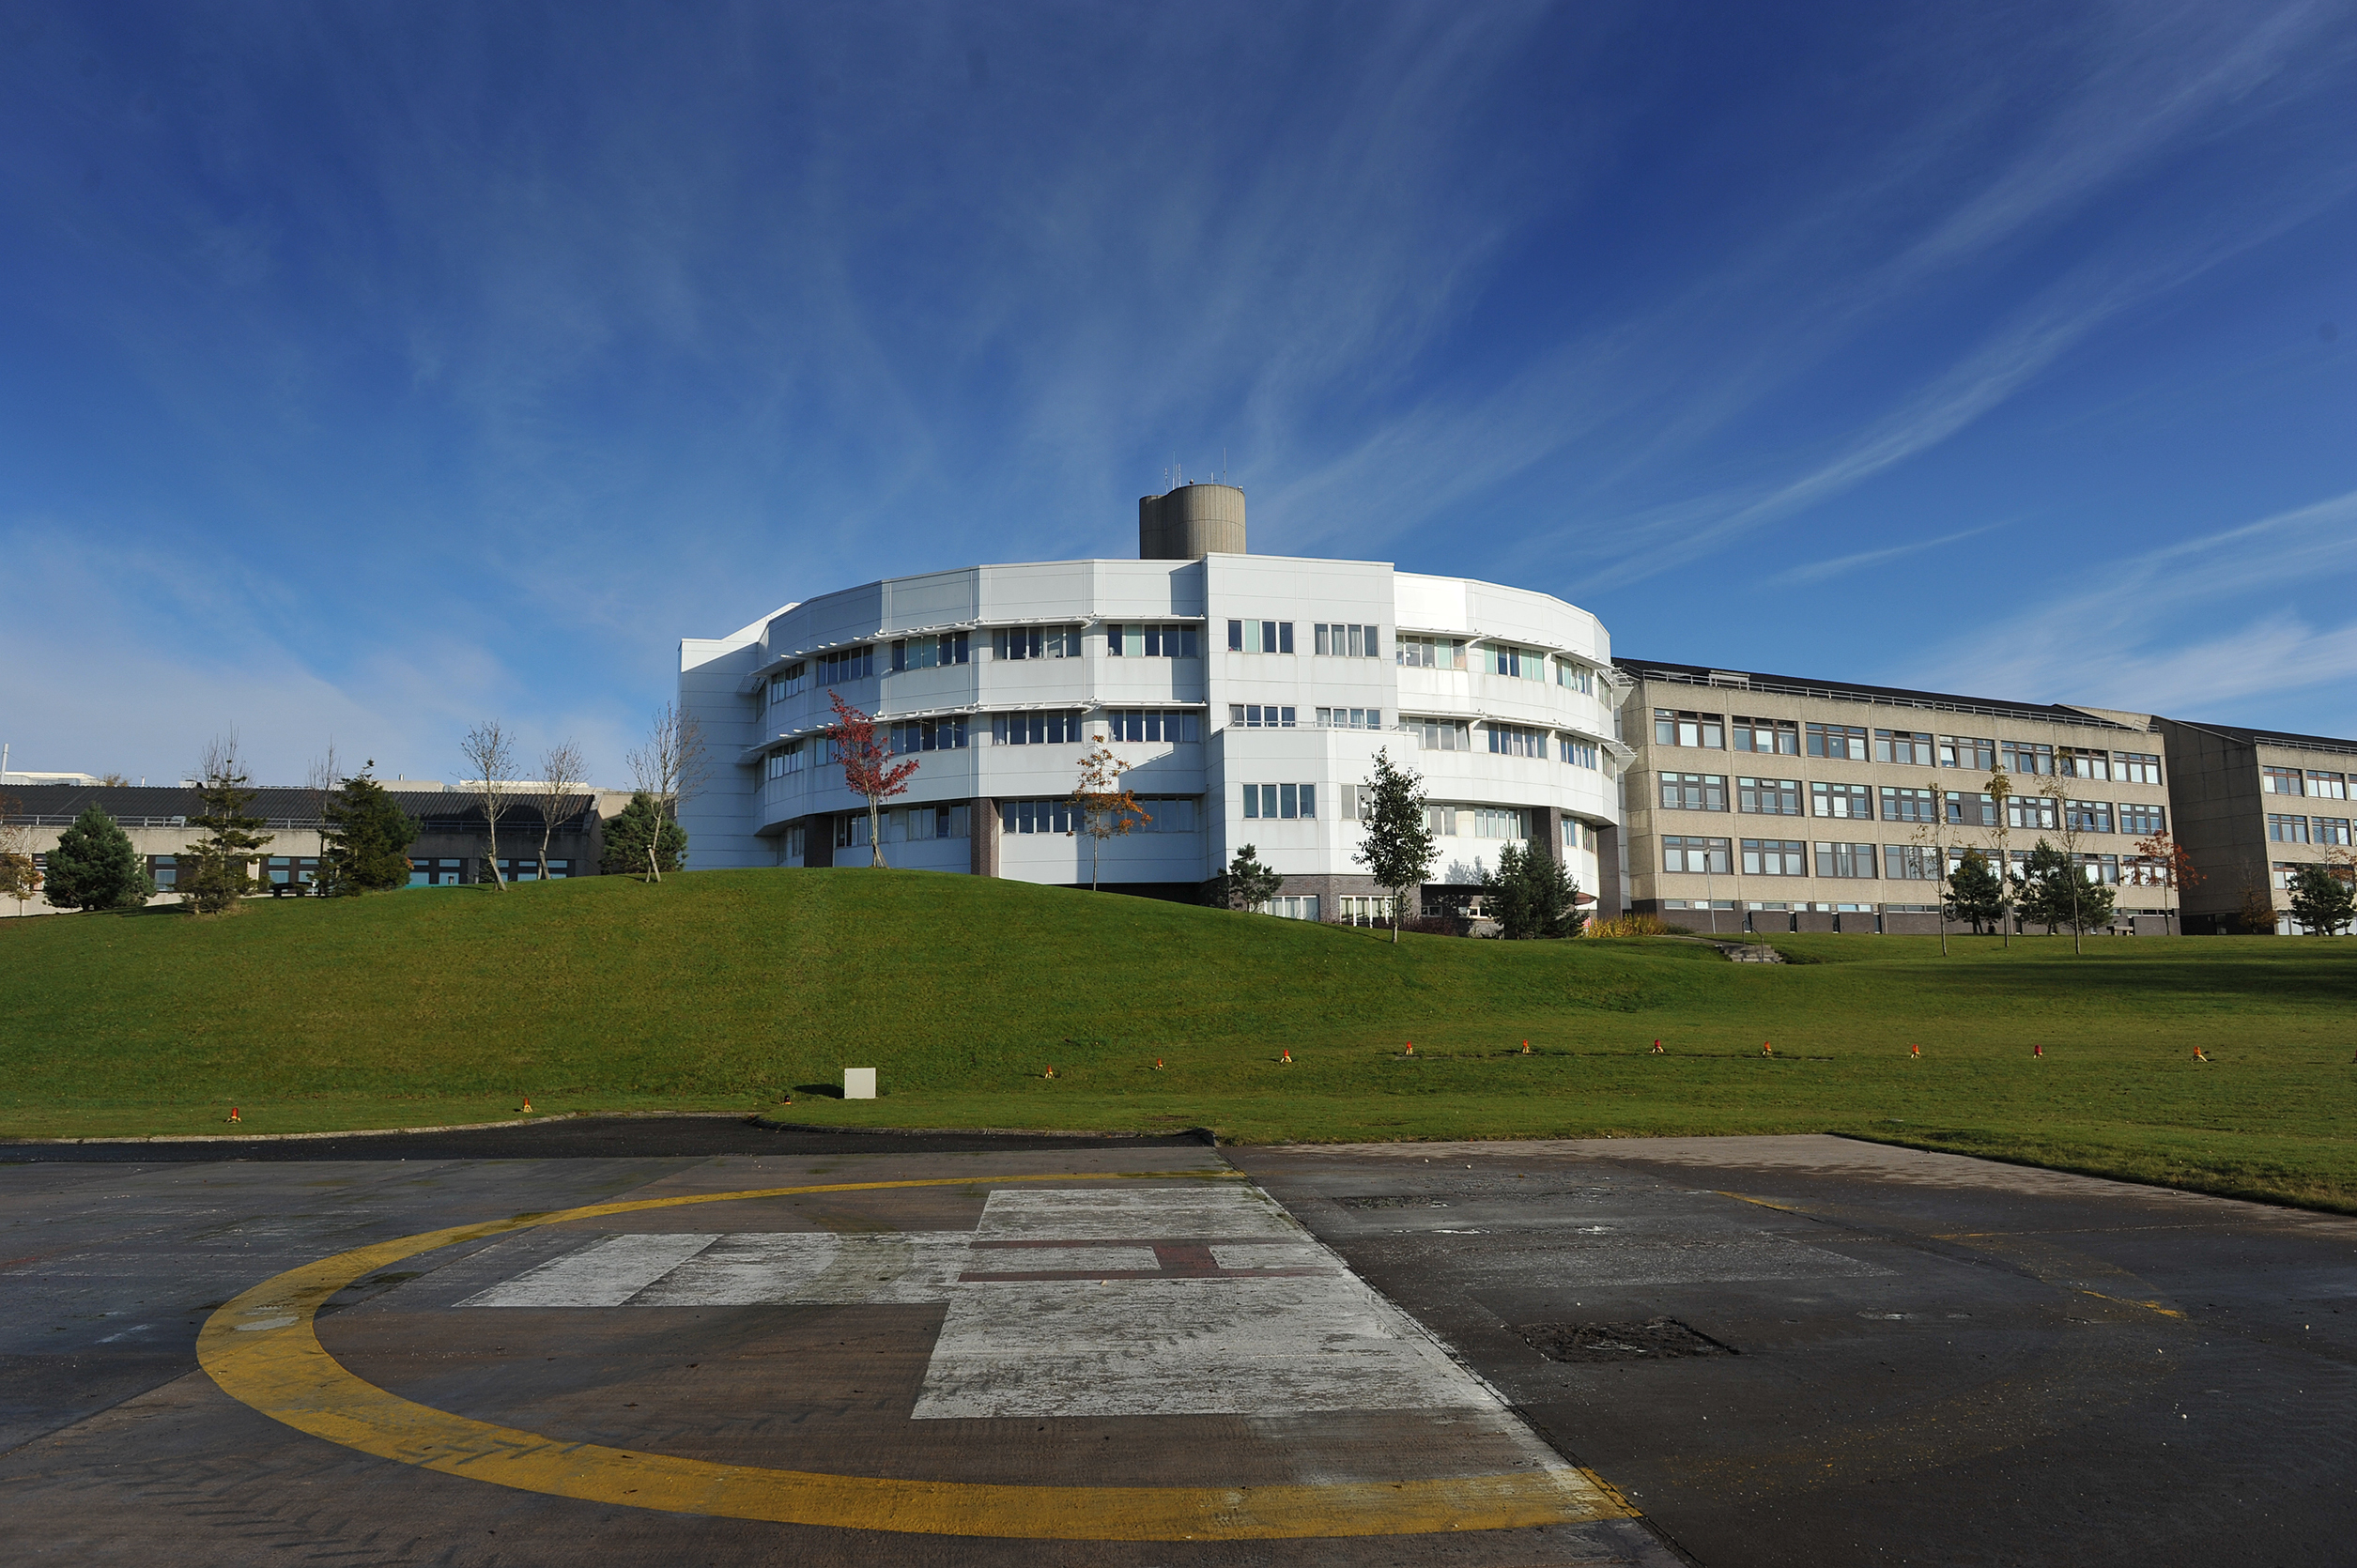 Building exterior of Ninewells Hospital, Dundee, showing the helipad in foreground.